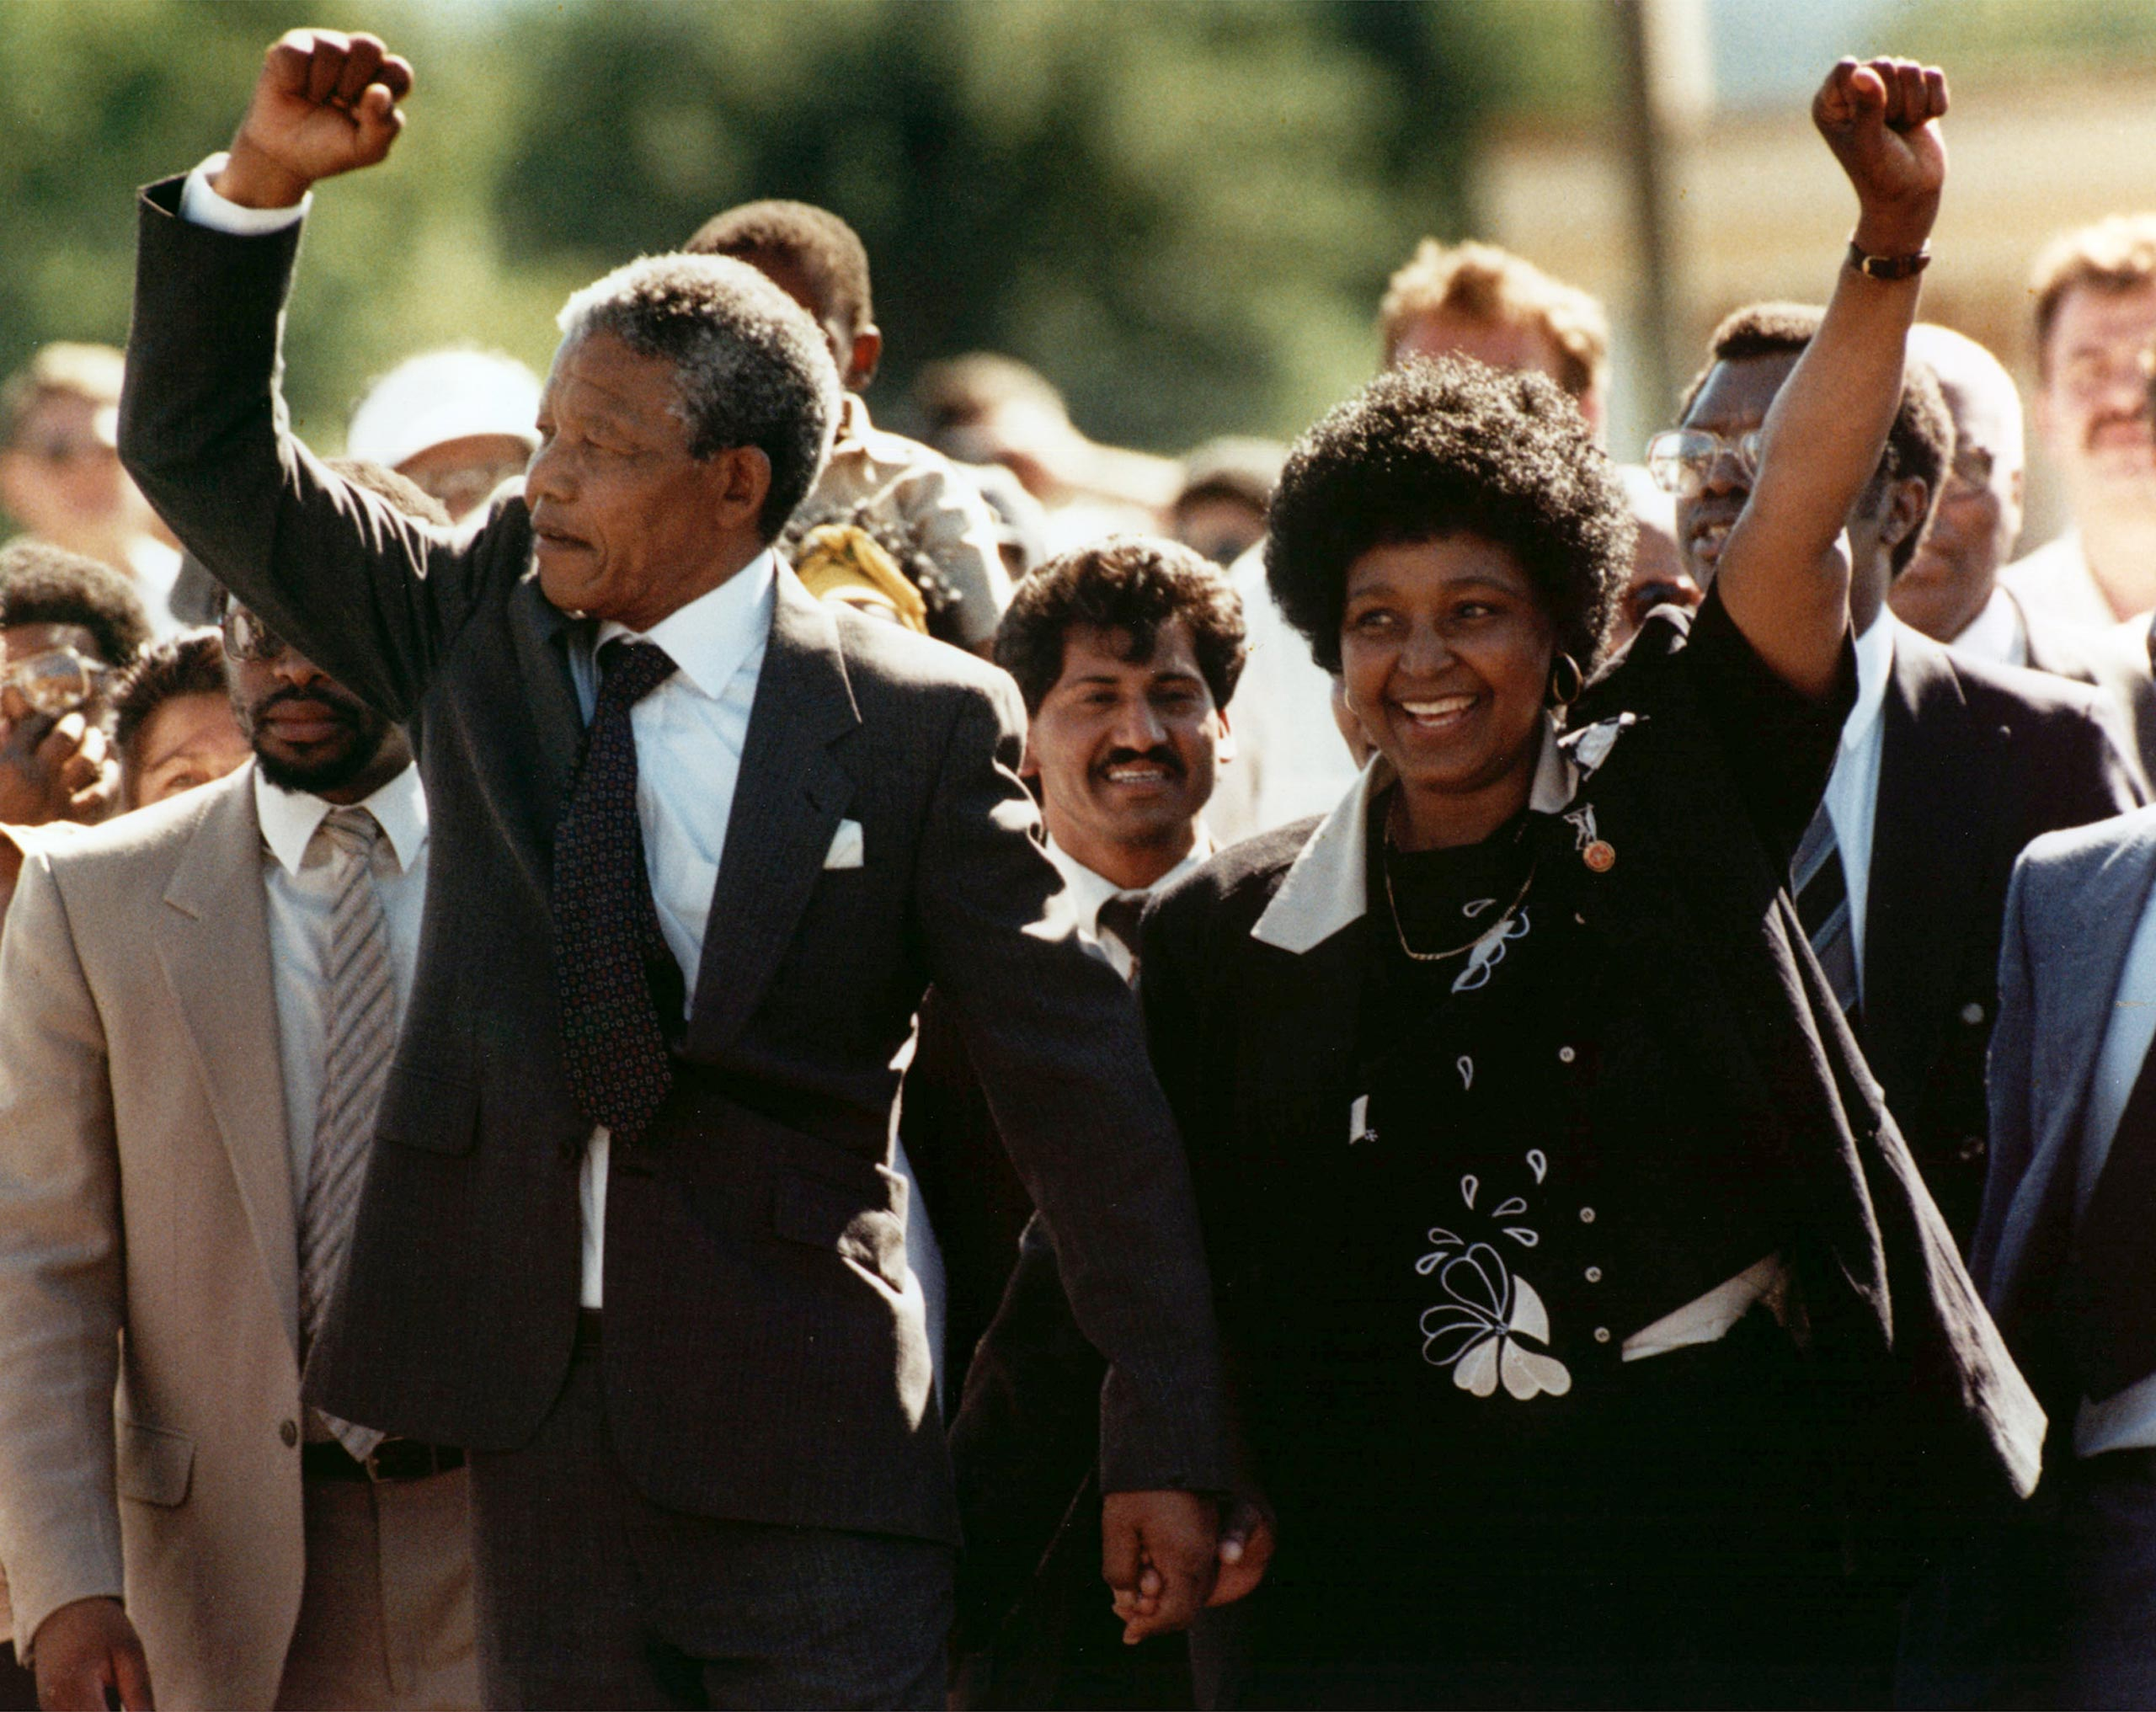 Nelson Mandela and wife Winnie, walking hand in hand, raise clenched fists upon his release from Victor prison in Cape Town on Feb. 11, 1990.